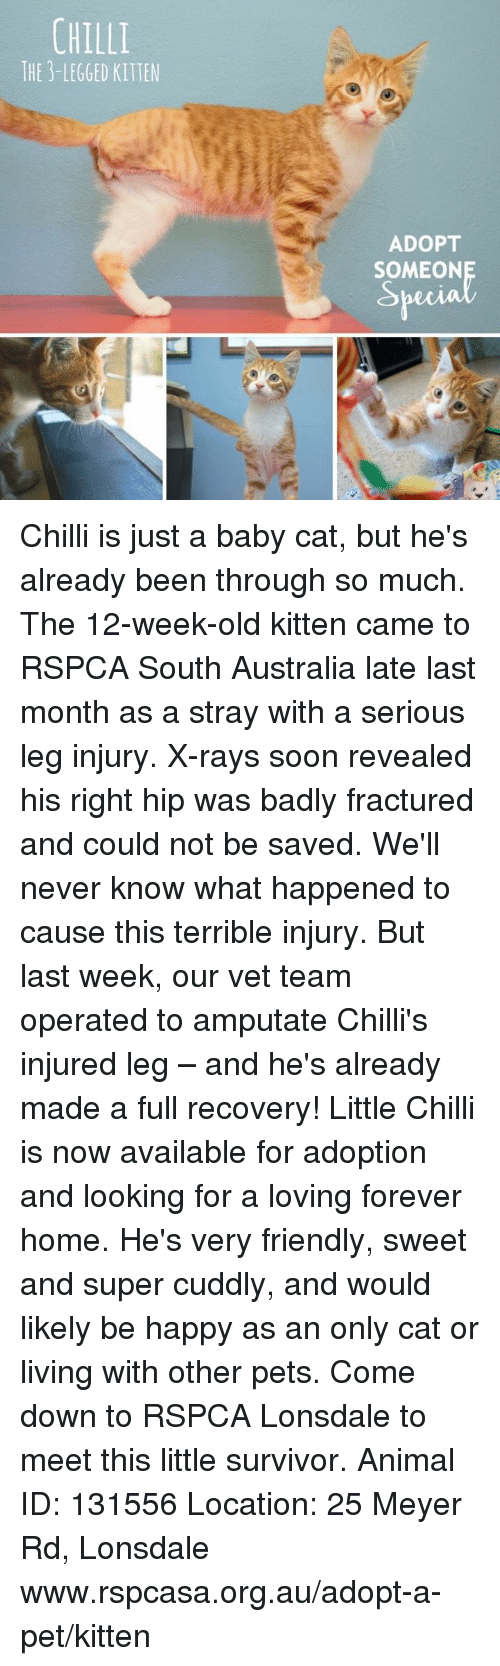 Memes, Soon..., and Survivor: CHILLI  THE 3-LEGGED KITTEN  ADOPT  SOMEONE Chilli is just a baby cat, but he's already been through so much. The 12-week-old kitten came to RSPCA South Australia late last month as a stray with a serious leg injury. X-rays soon revealed his right hip was badly fractured and could not be saved. We'll never know what happened to cause this terrible injury. But last week, our vet team operated to amputate Chilli's injured leg – and he's already made a full recovery!  Little Chilli is now available for adoption and looking for a loving forever home. He's very friendly, sweet and super cuddly, and would likely be happy as an only cat or living with other pets. Come down to RSPCA Lonsdale to meet this little survivor.  Animal ID: 131556  Location: 25 Meyer Rd, Lonsdale www.rspcasa.org.au/adopt-a-pet/kitten